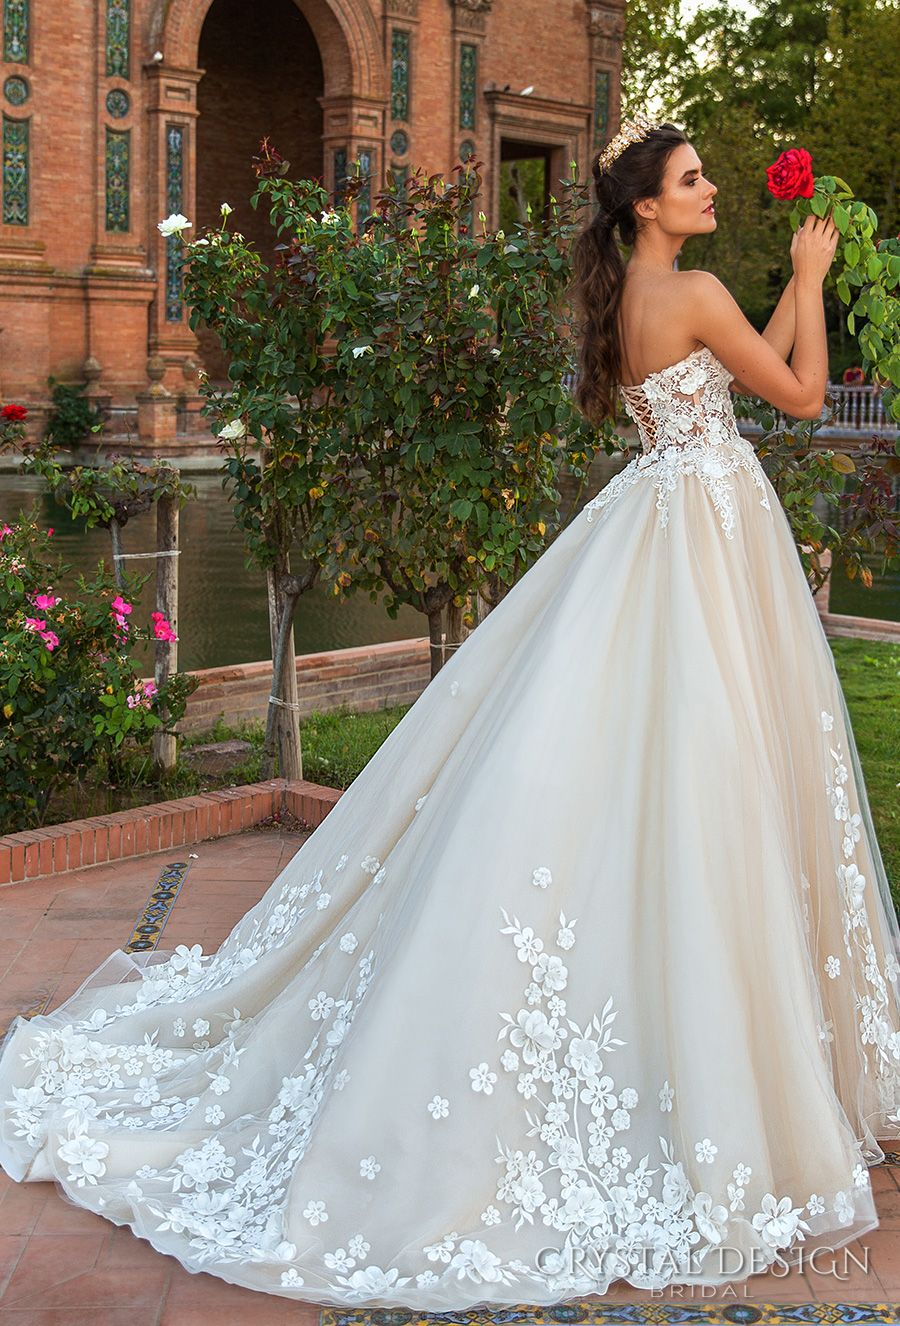 Beautiful Wedding Dresses From The 2017 Crystal Design Collection Sevilla Bridal Campaign Wedding Inspirasi Strapless Wedding Dress Princess Princess Wedding Dresses Beautiful Wedding Dresses [ 1326 x 900 Pixel ]